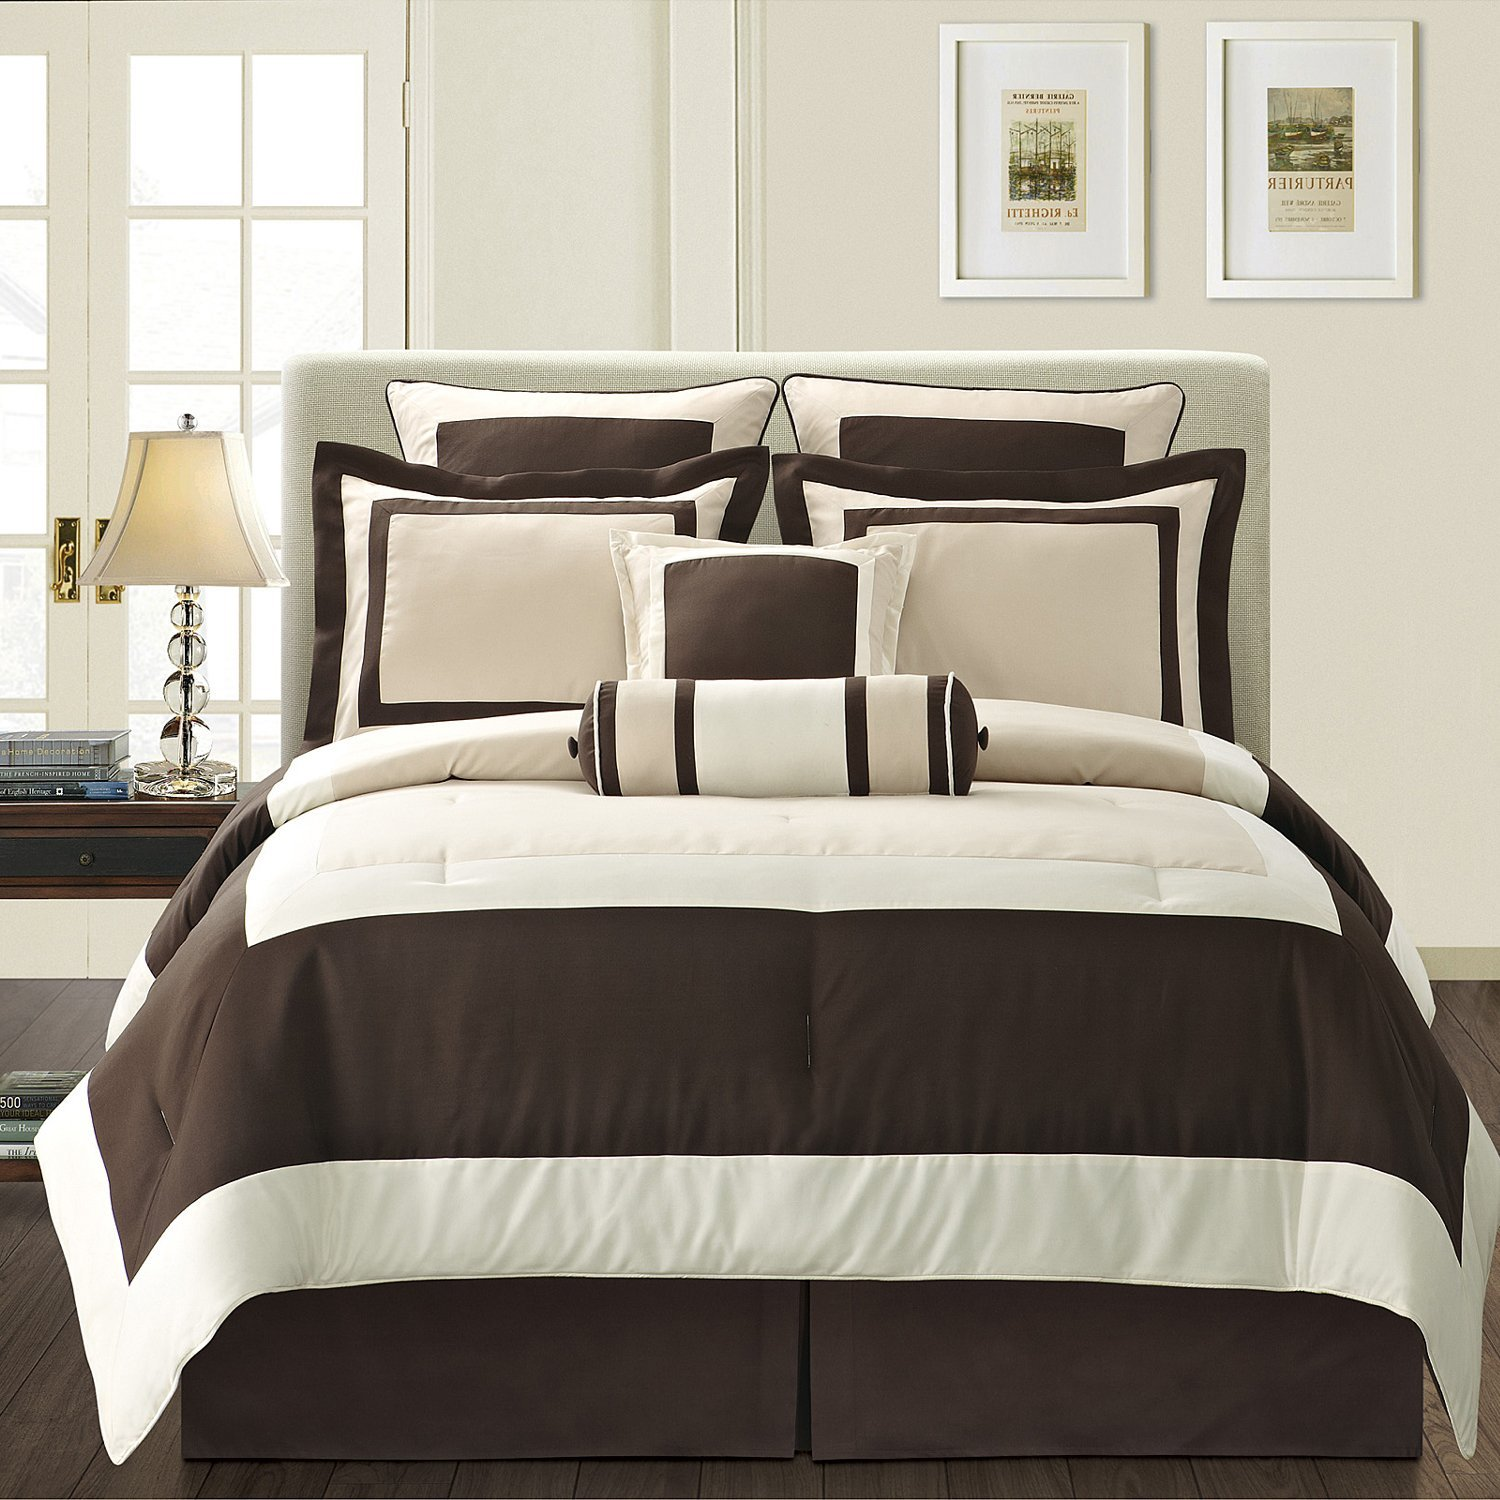 Image of: Best Mens Bedding Ideas